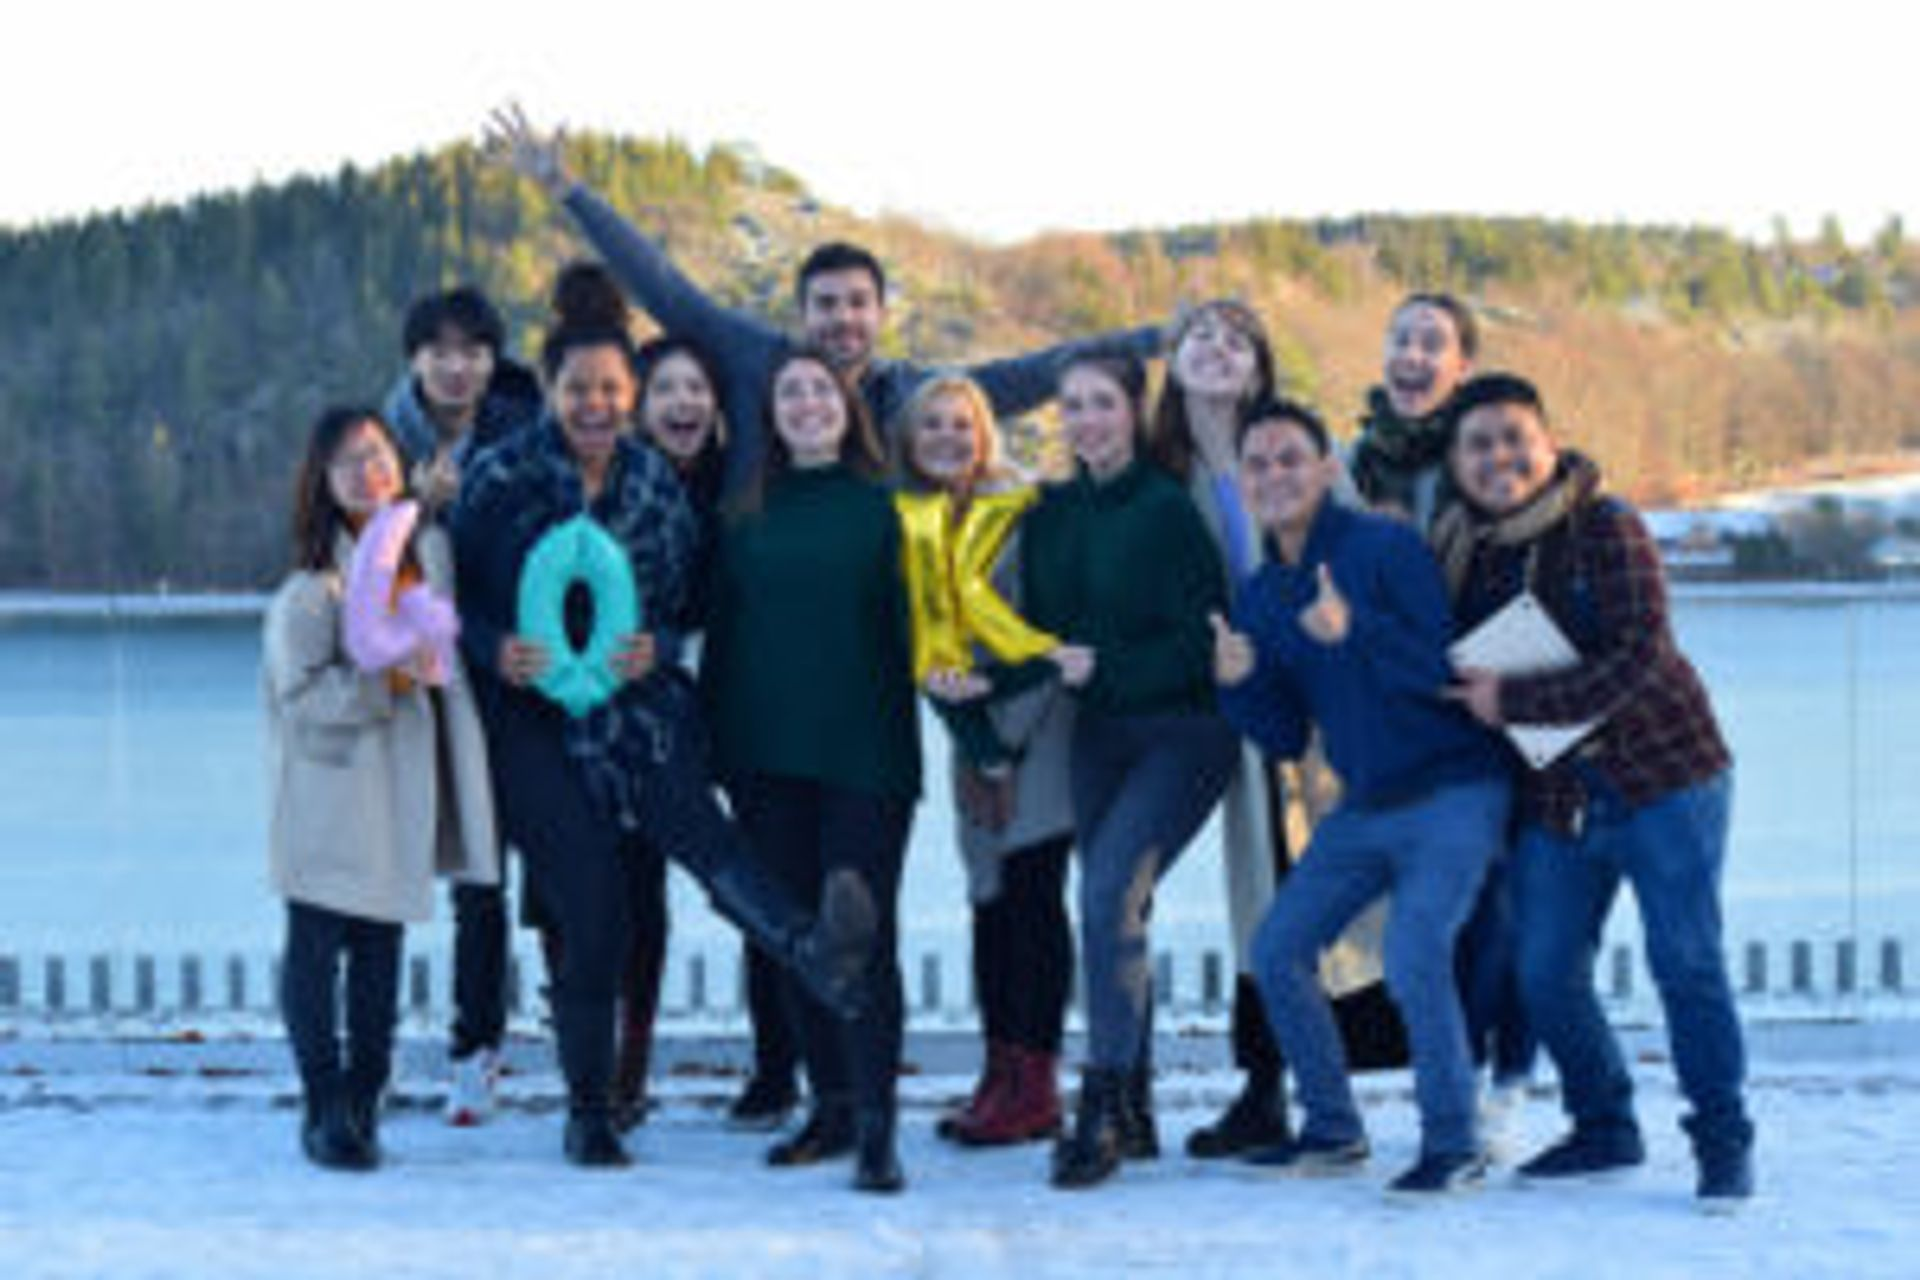 The group of Study in Sweden digital ambassadors standing together in front of a lake.